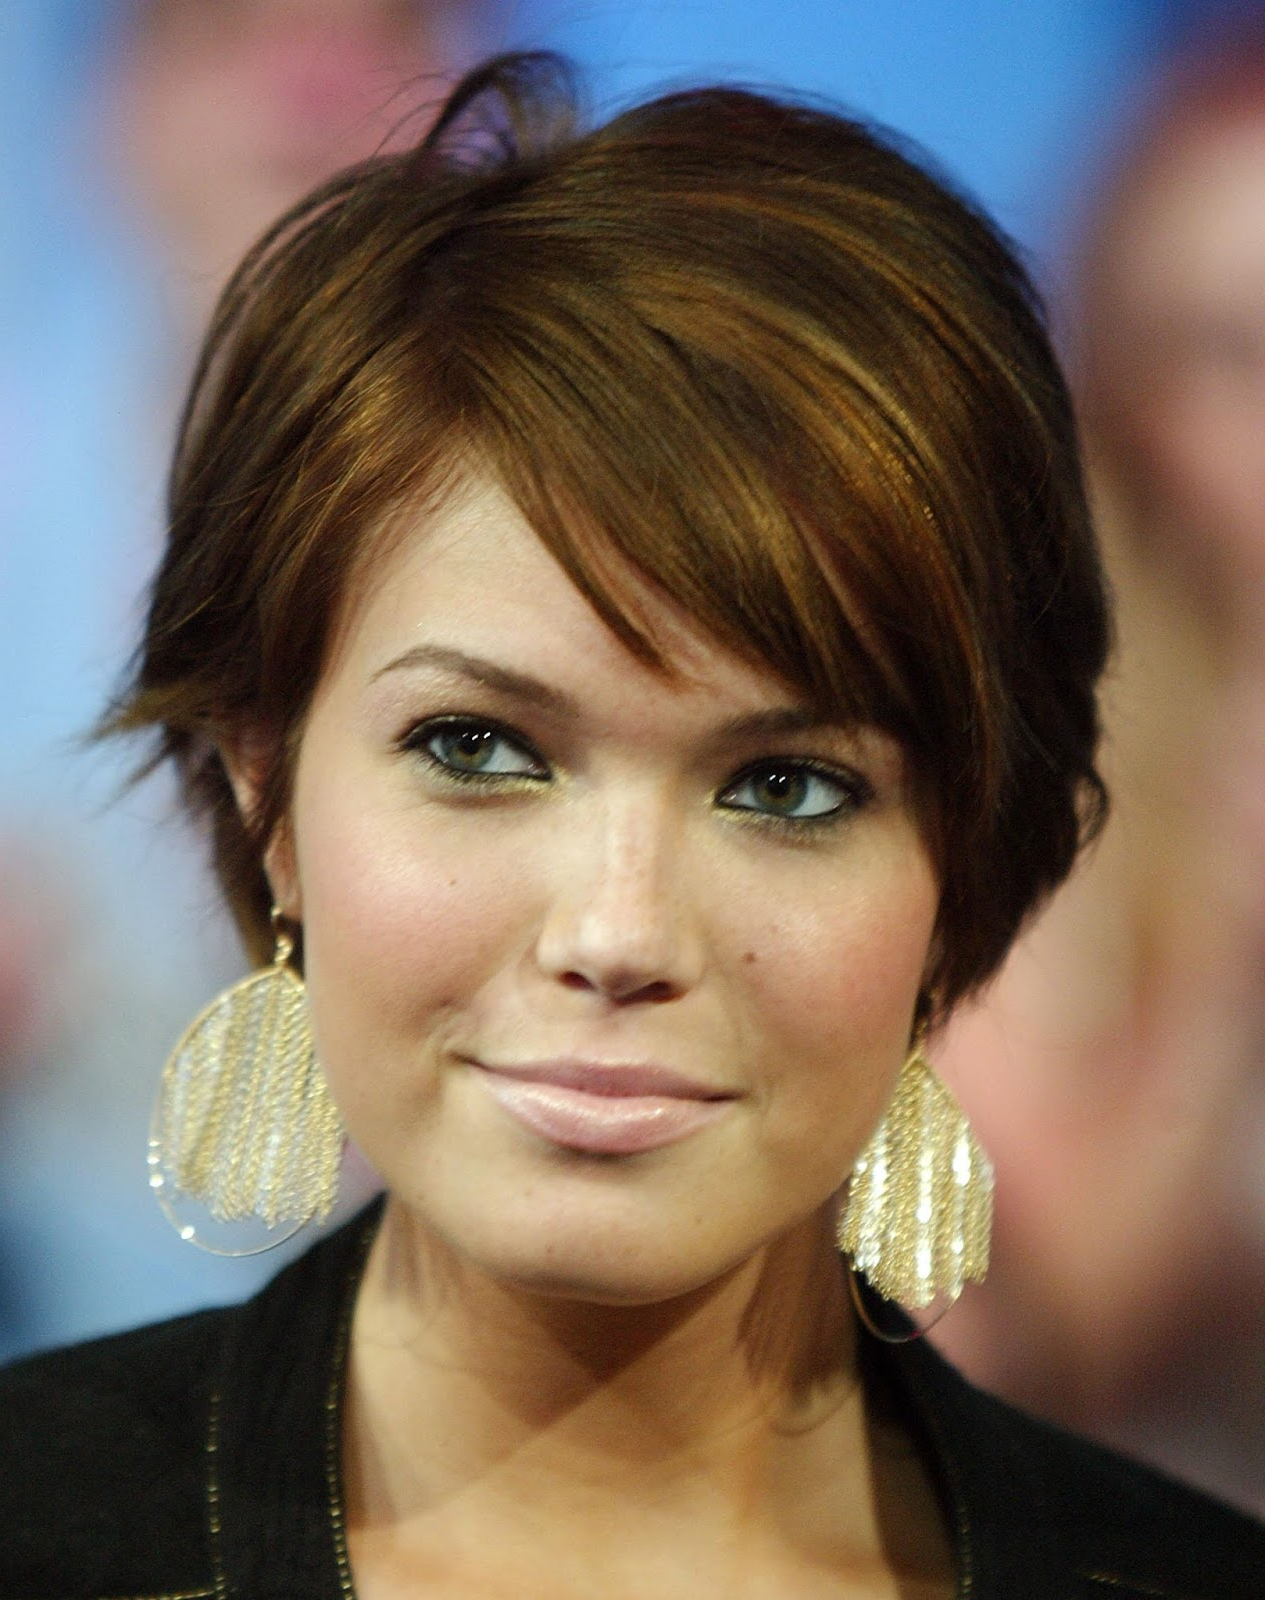 43 Short Haircuts For Round Face Women | Hairstylo For Short Hairstyles With Bangs For Round Face (View 18 of 25)